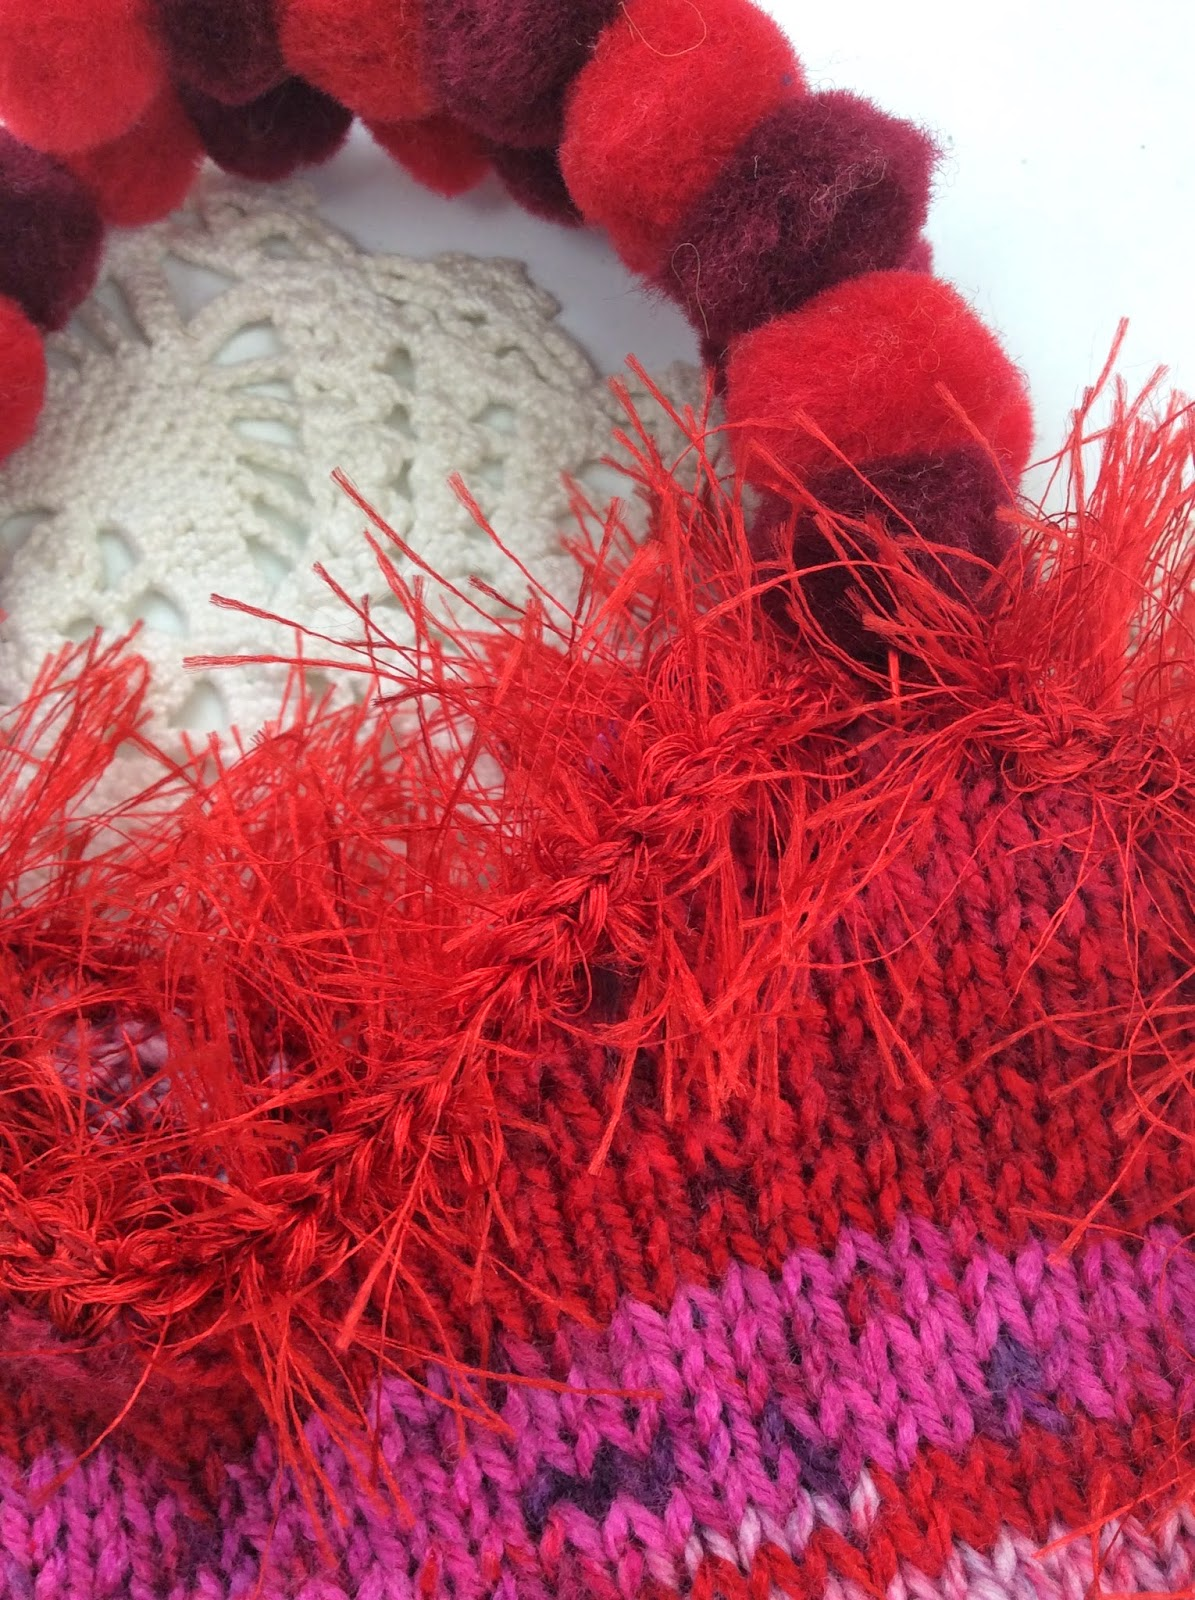 heart knit purse pompom handle eyelash yarn Valentine's day, stefanie Girard